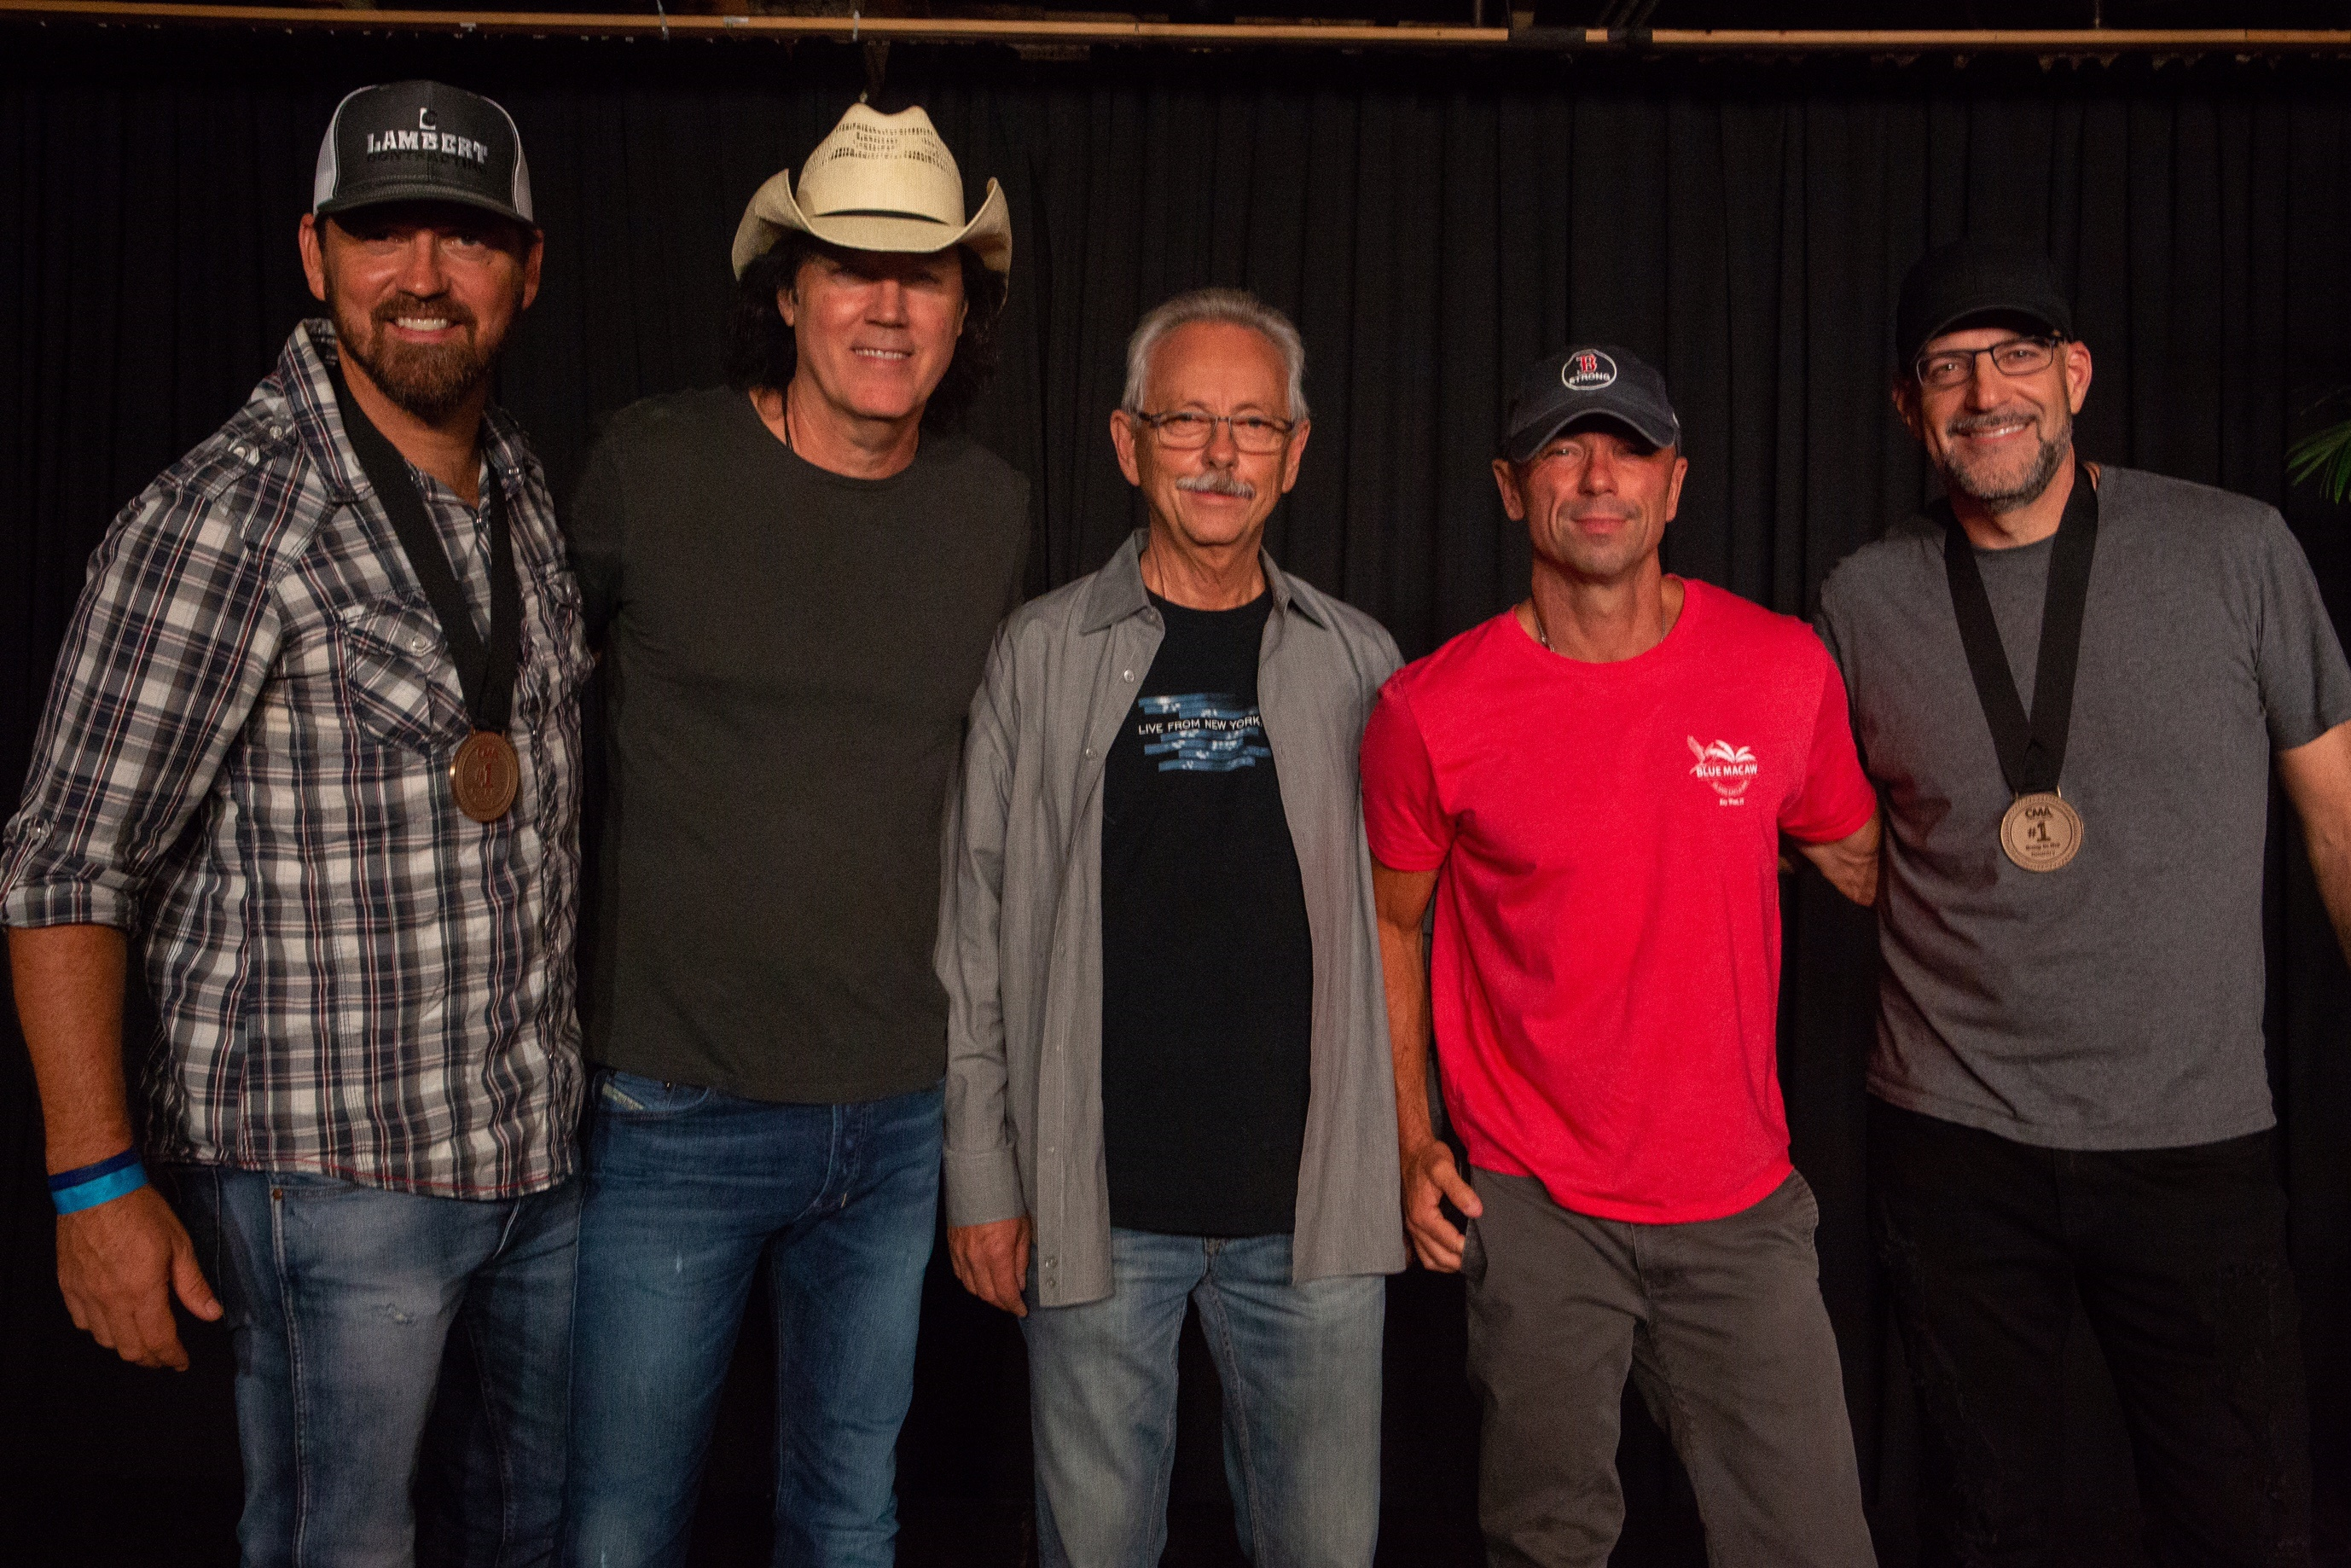 L to R: Jimmy Yeary, David Lee Murphy, Buddy Cannon, Kenny Chesney, Chris Stevens